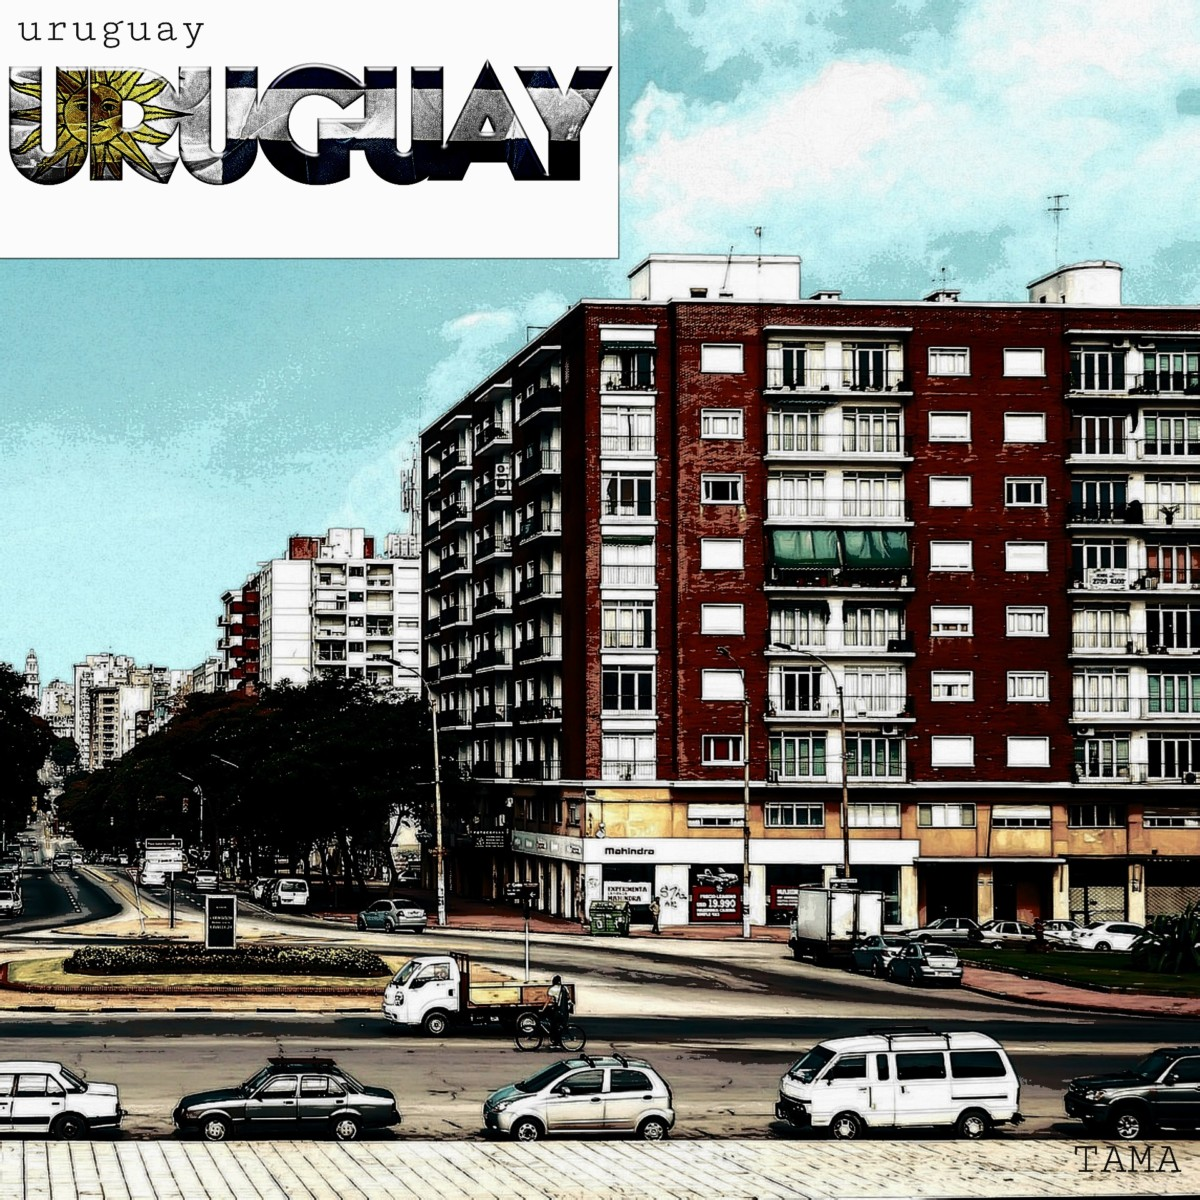 Independence Day of Uruguay